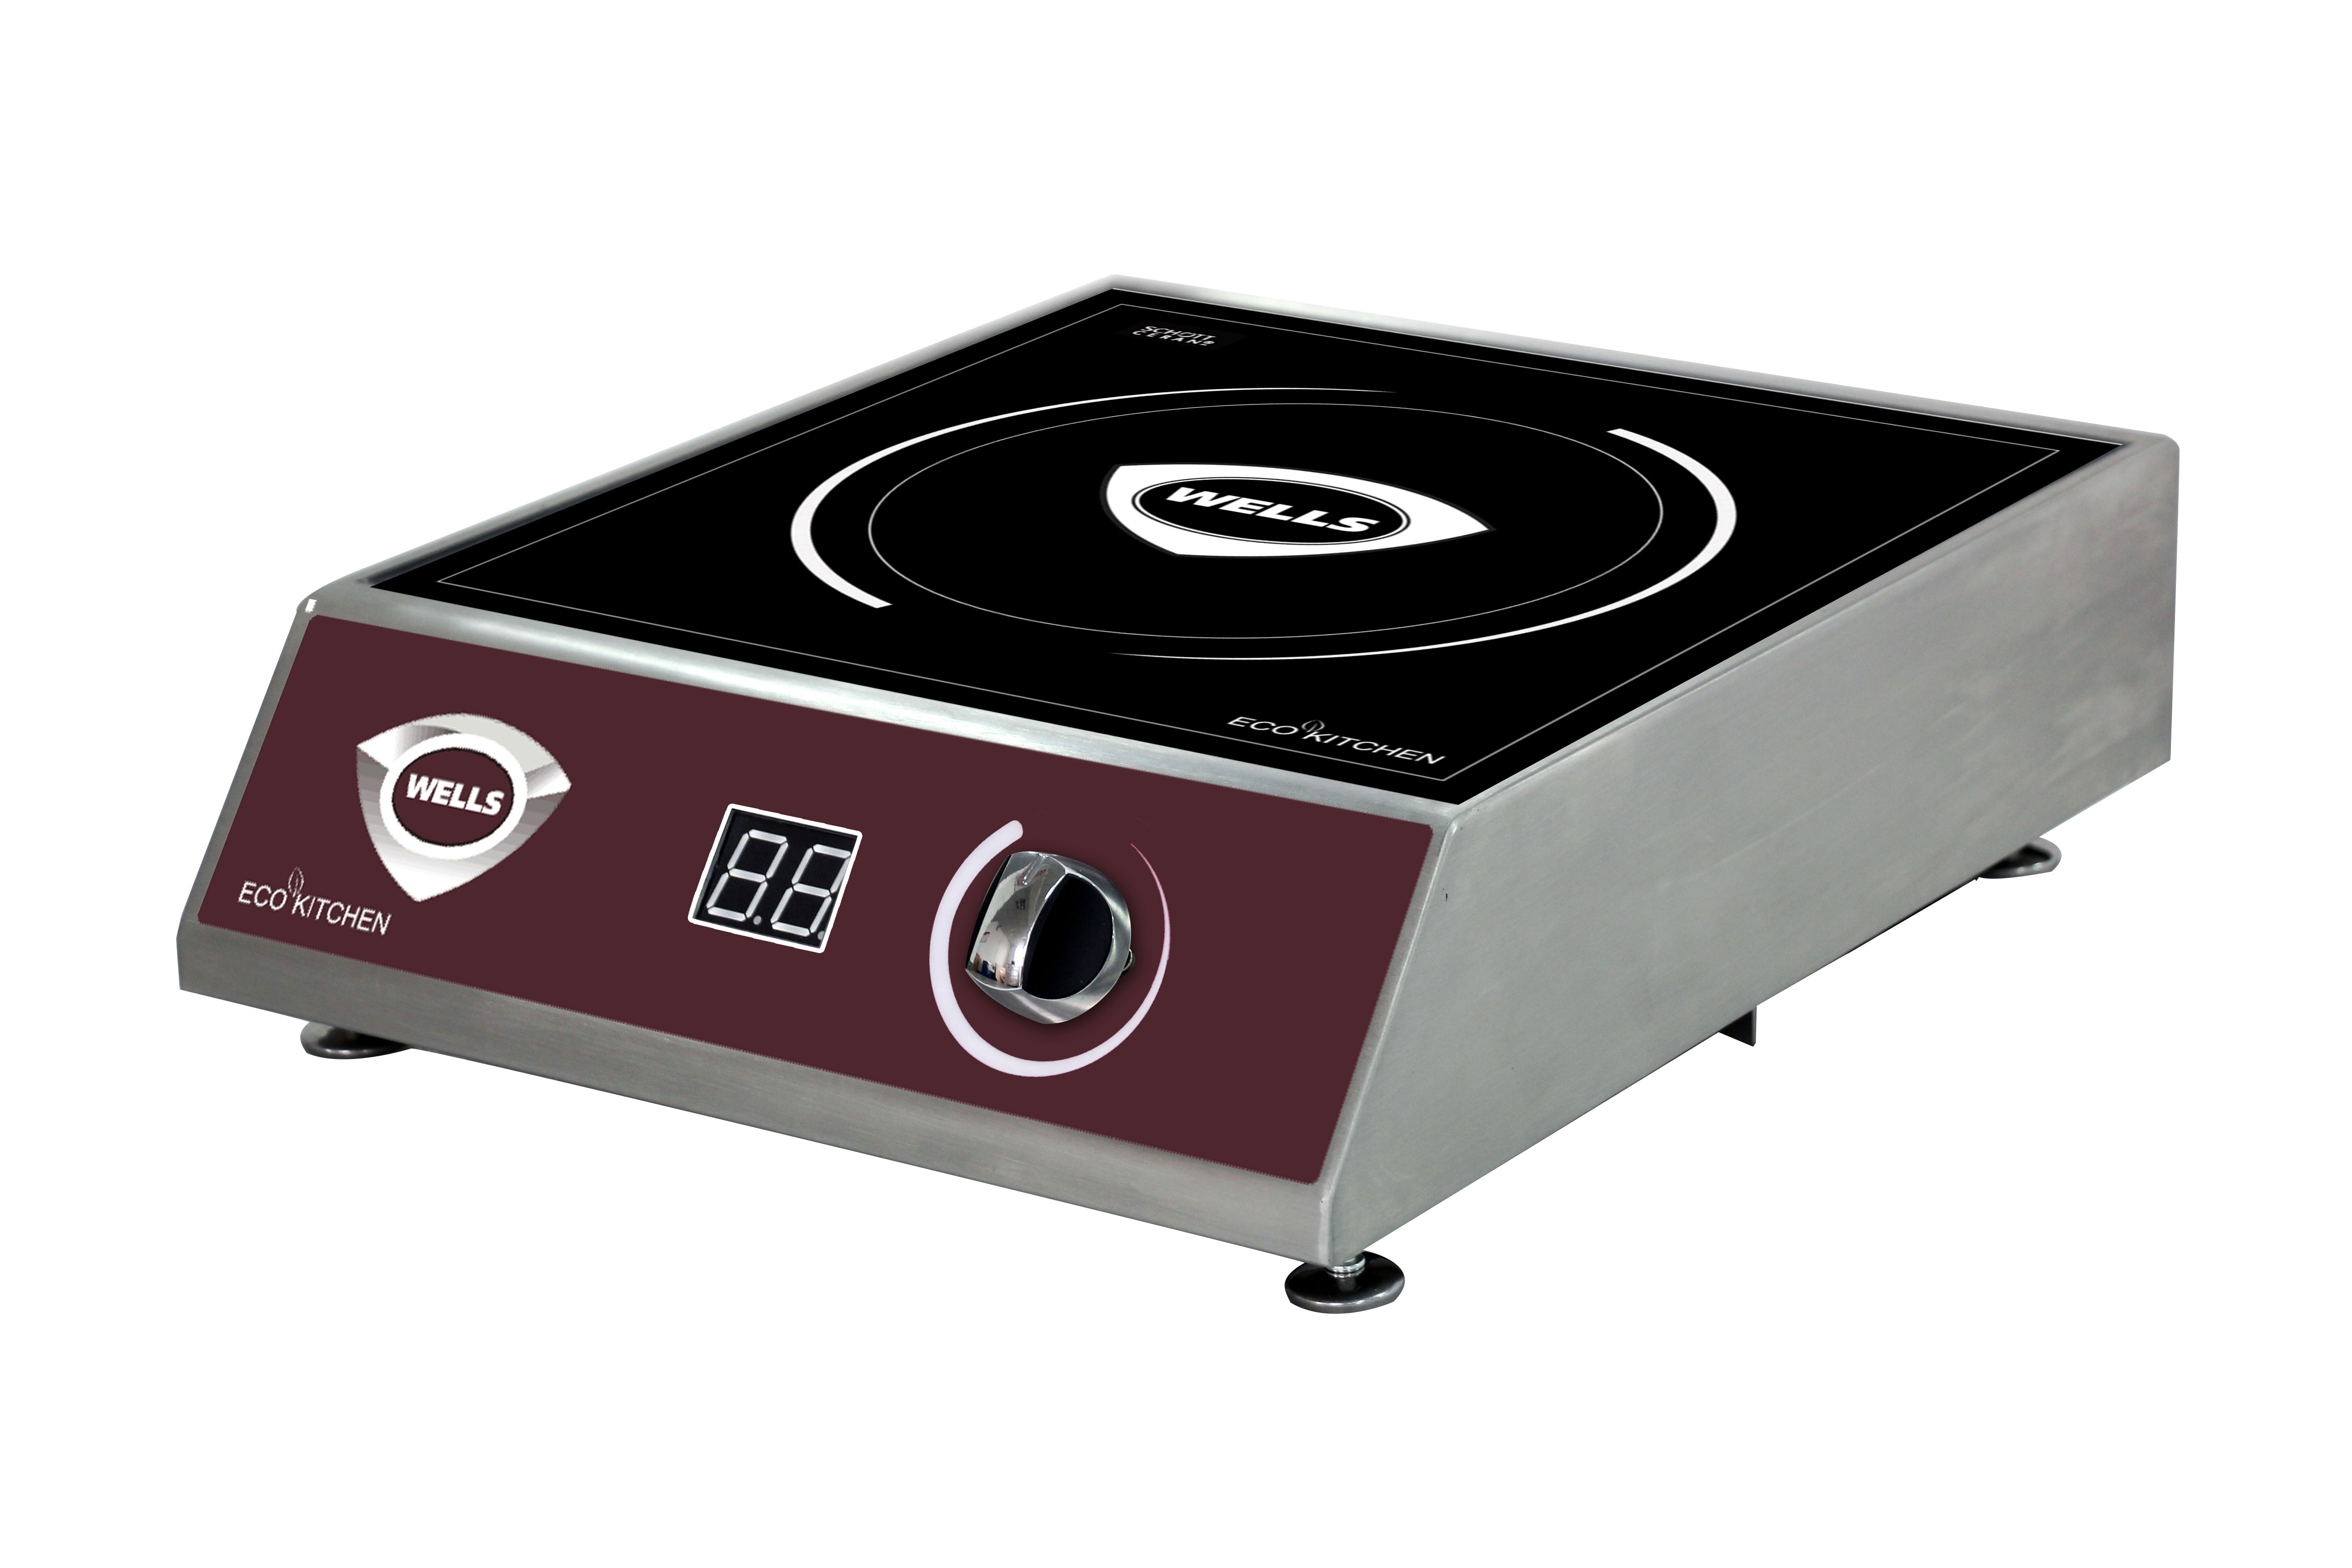 Wells ISC25 induction range, countertop